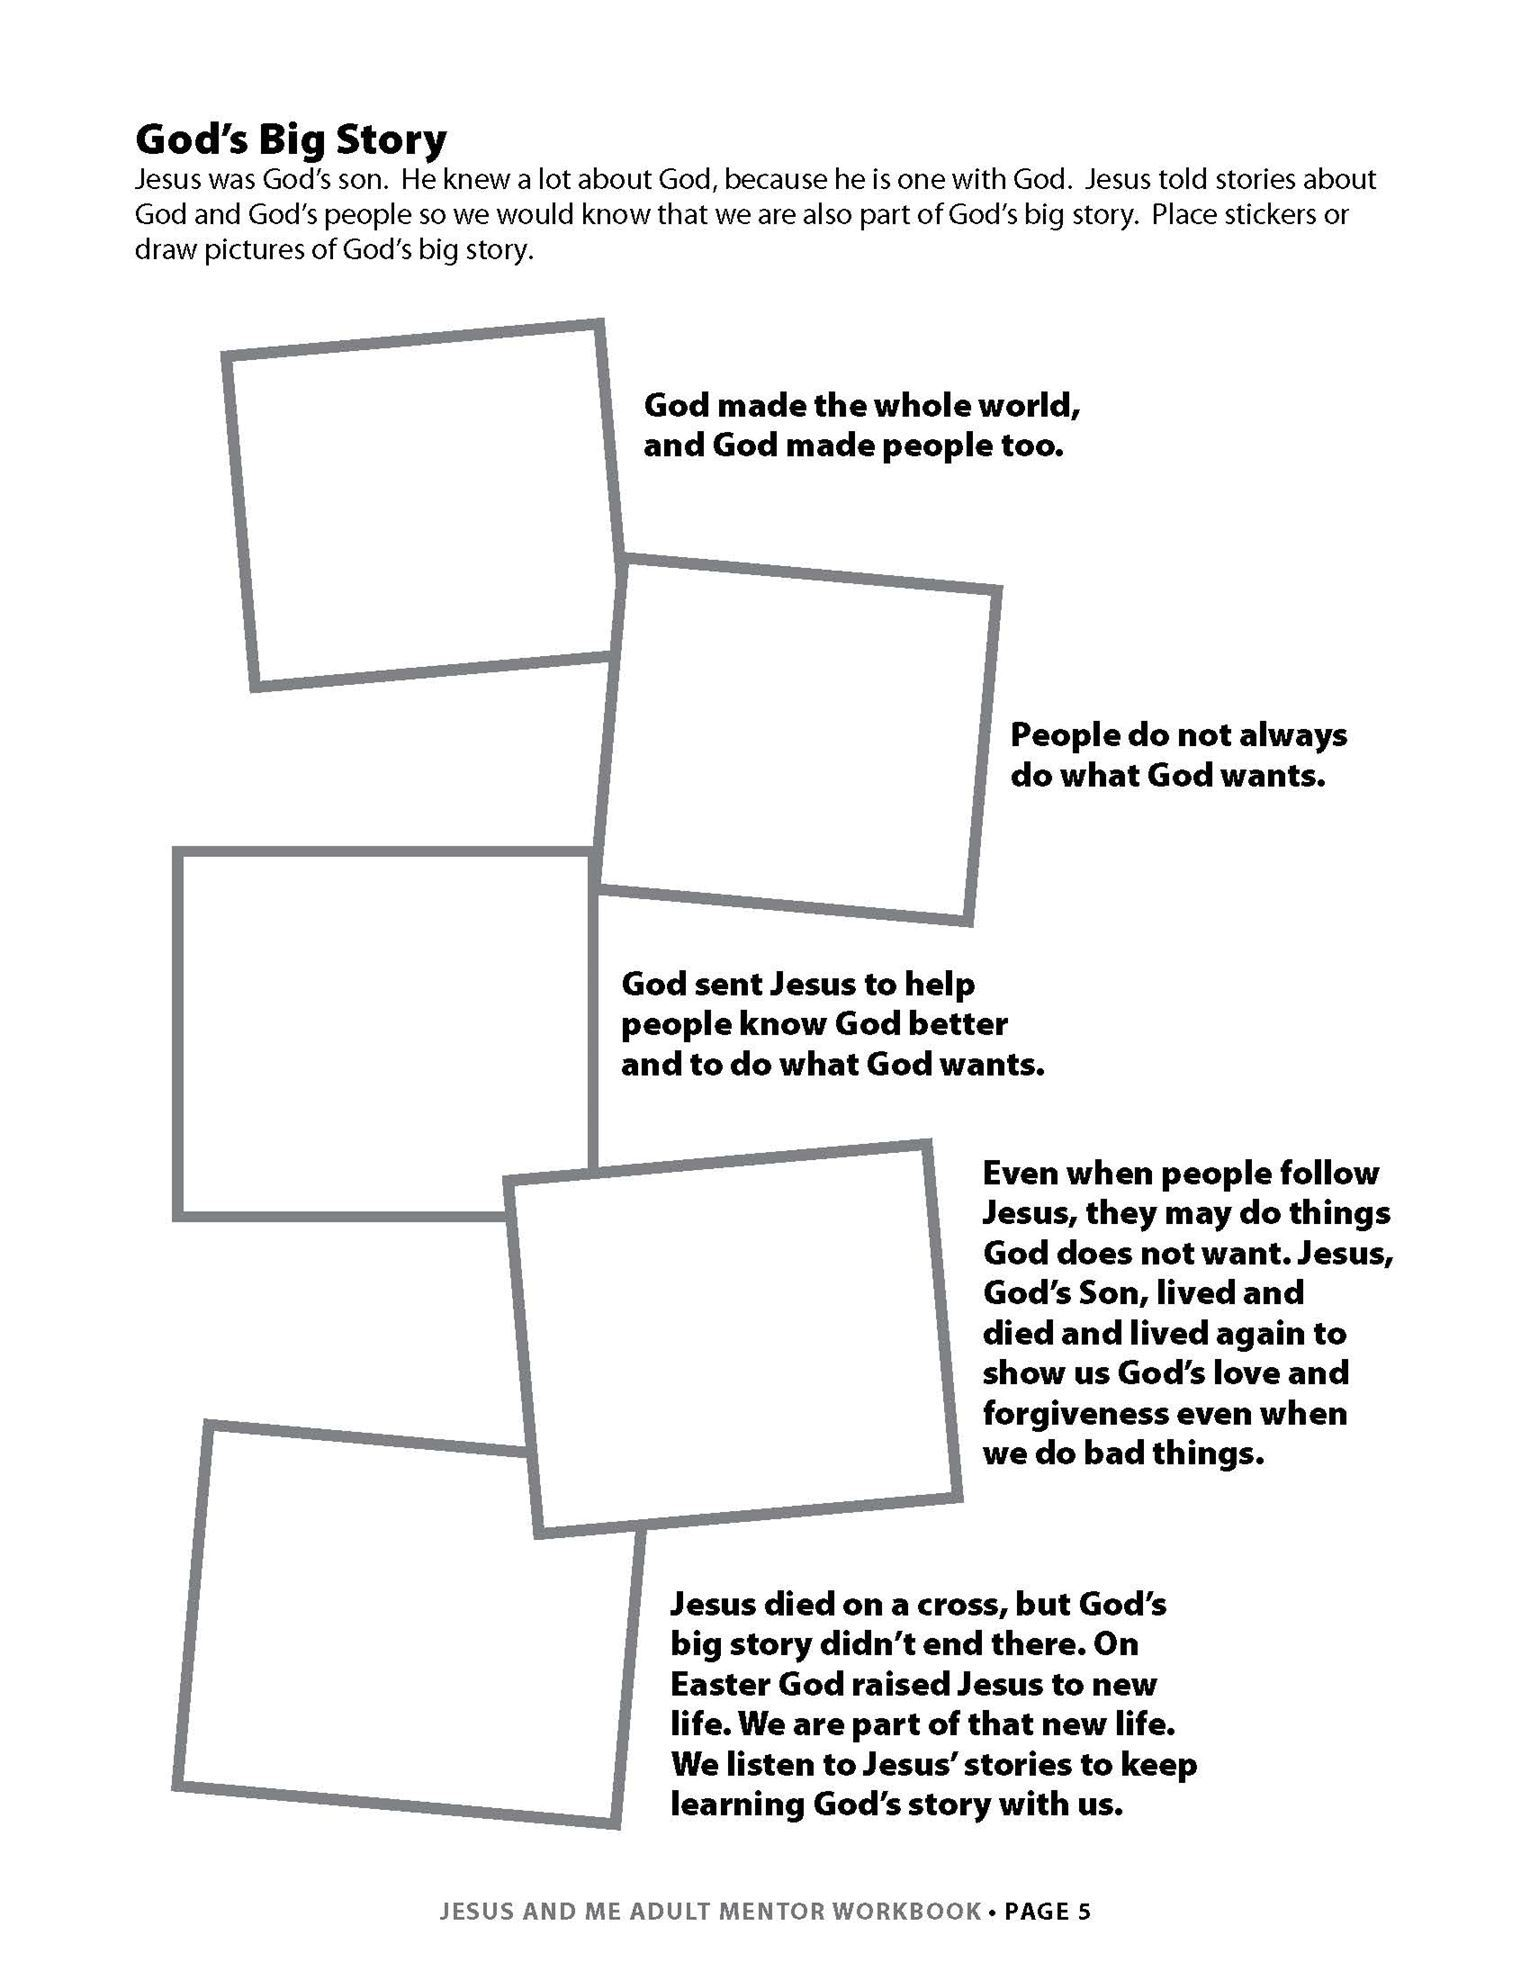 Jesus & Me Mentor Workbook Lesson 1 Page 2